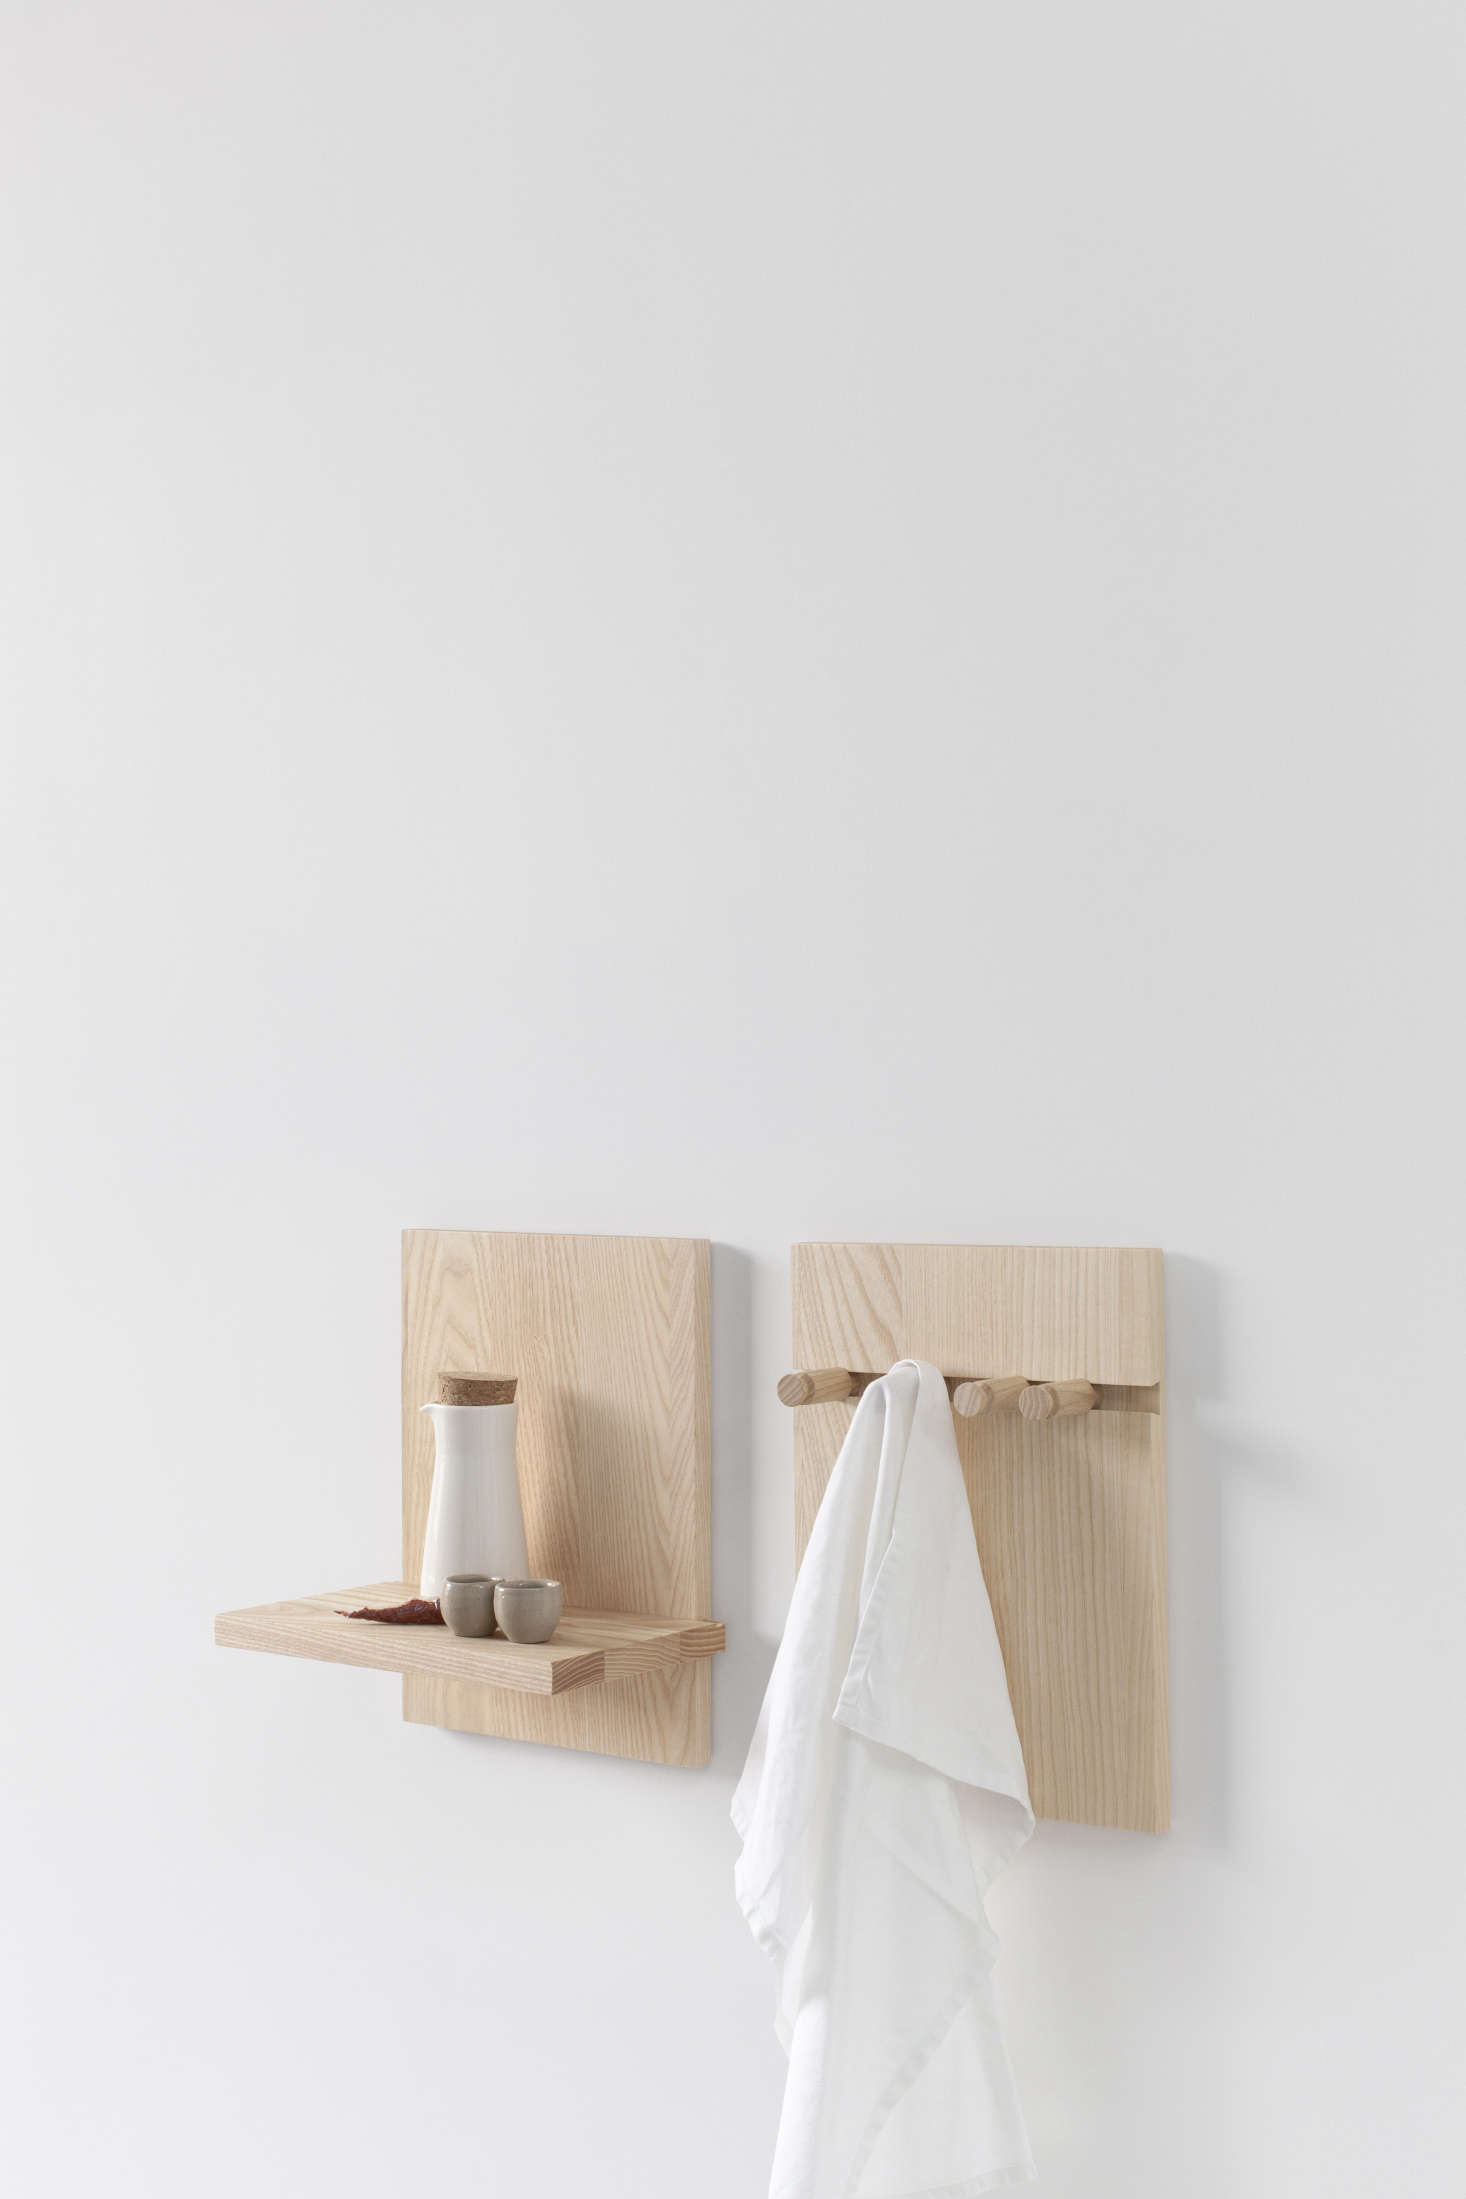 The Wall Shelf by Steffen Kehrle comes in a range of shelf and peg variations that start at €src=